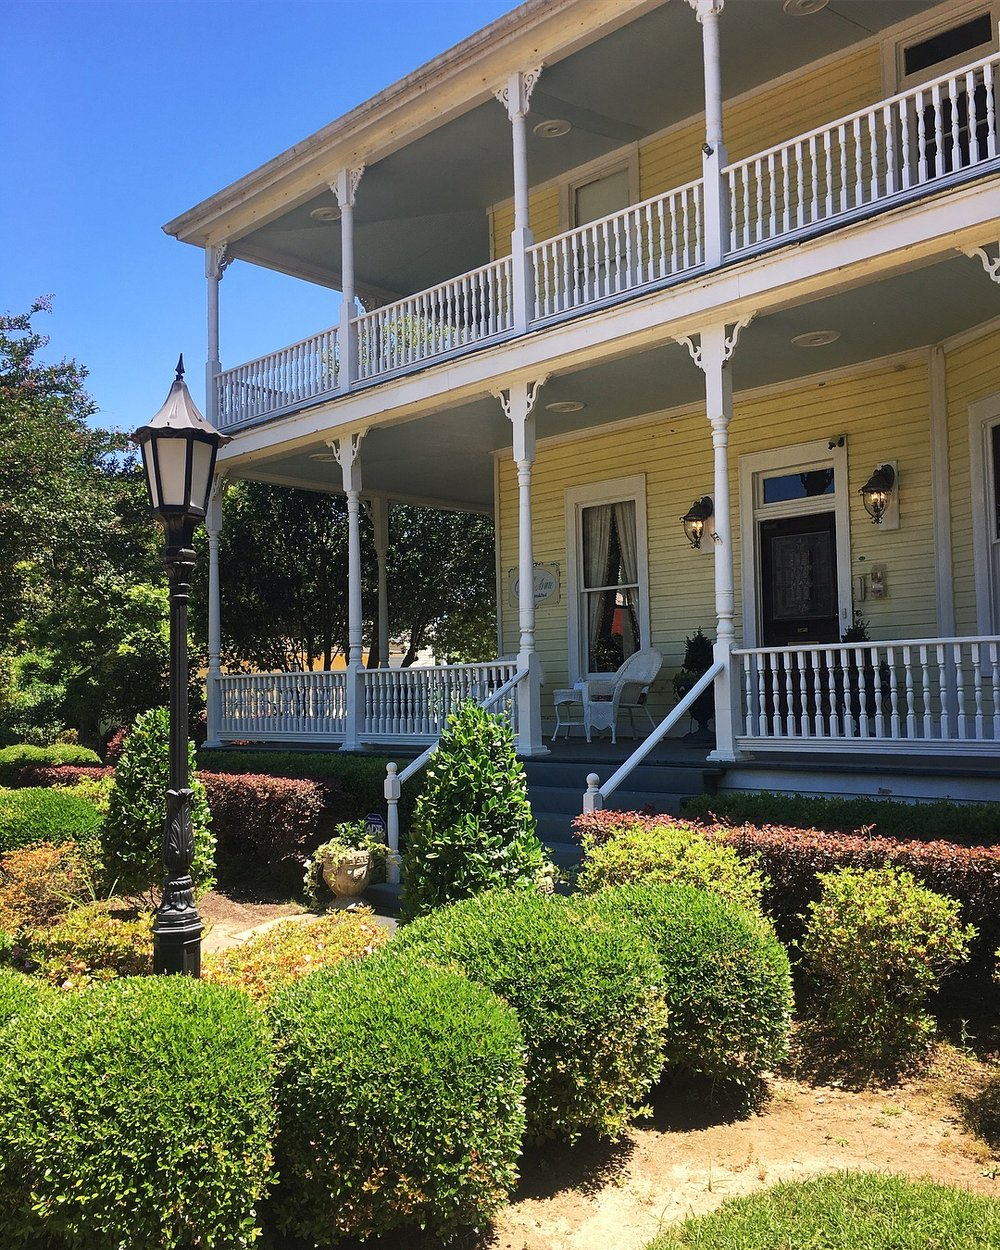 The Queen Anne Bed & Breakfast, 125 Pine Street, Natchitoches, Louisiana